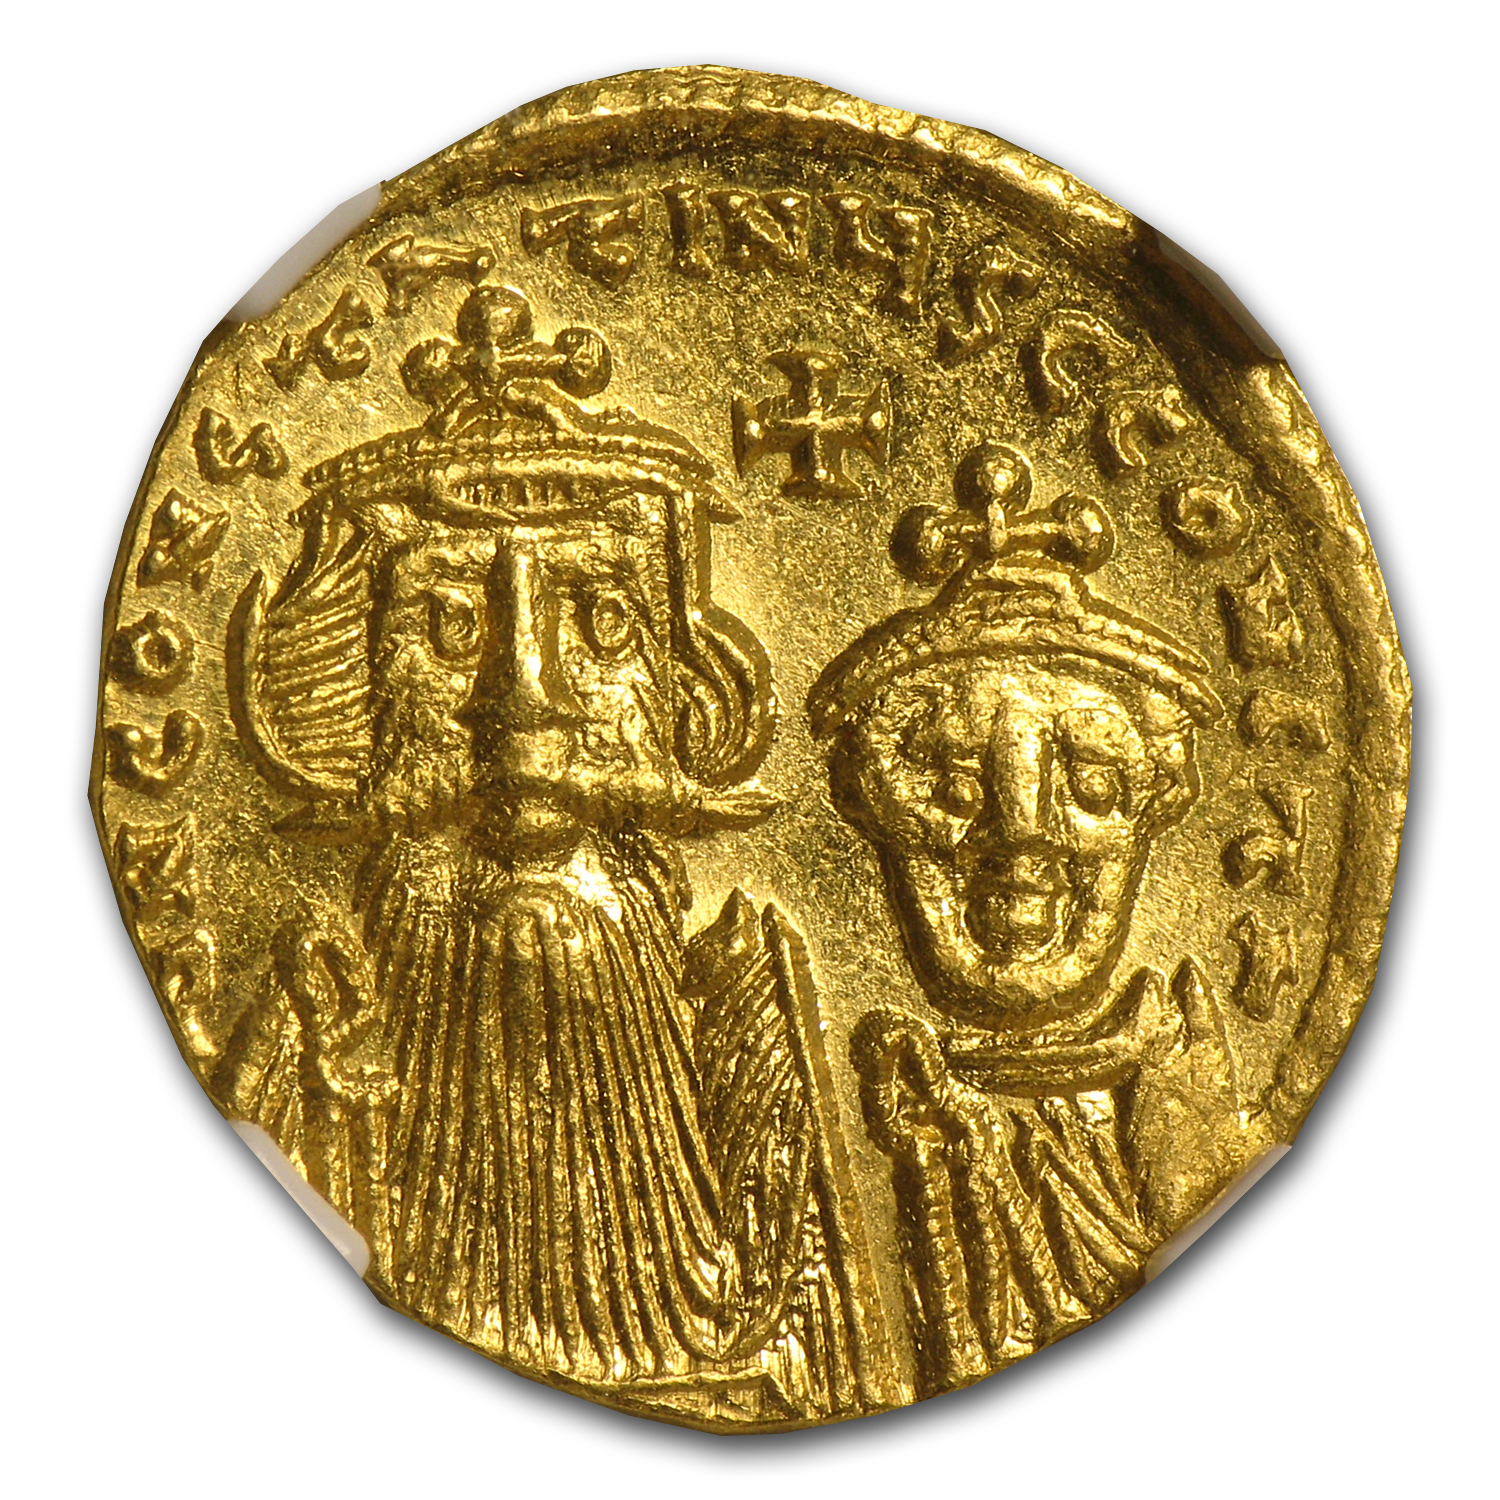 Byzantine Gold Constans II, Constant. IV MS NGC (654-668 AD)